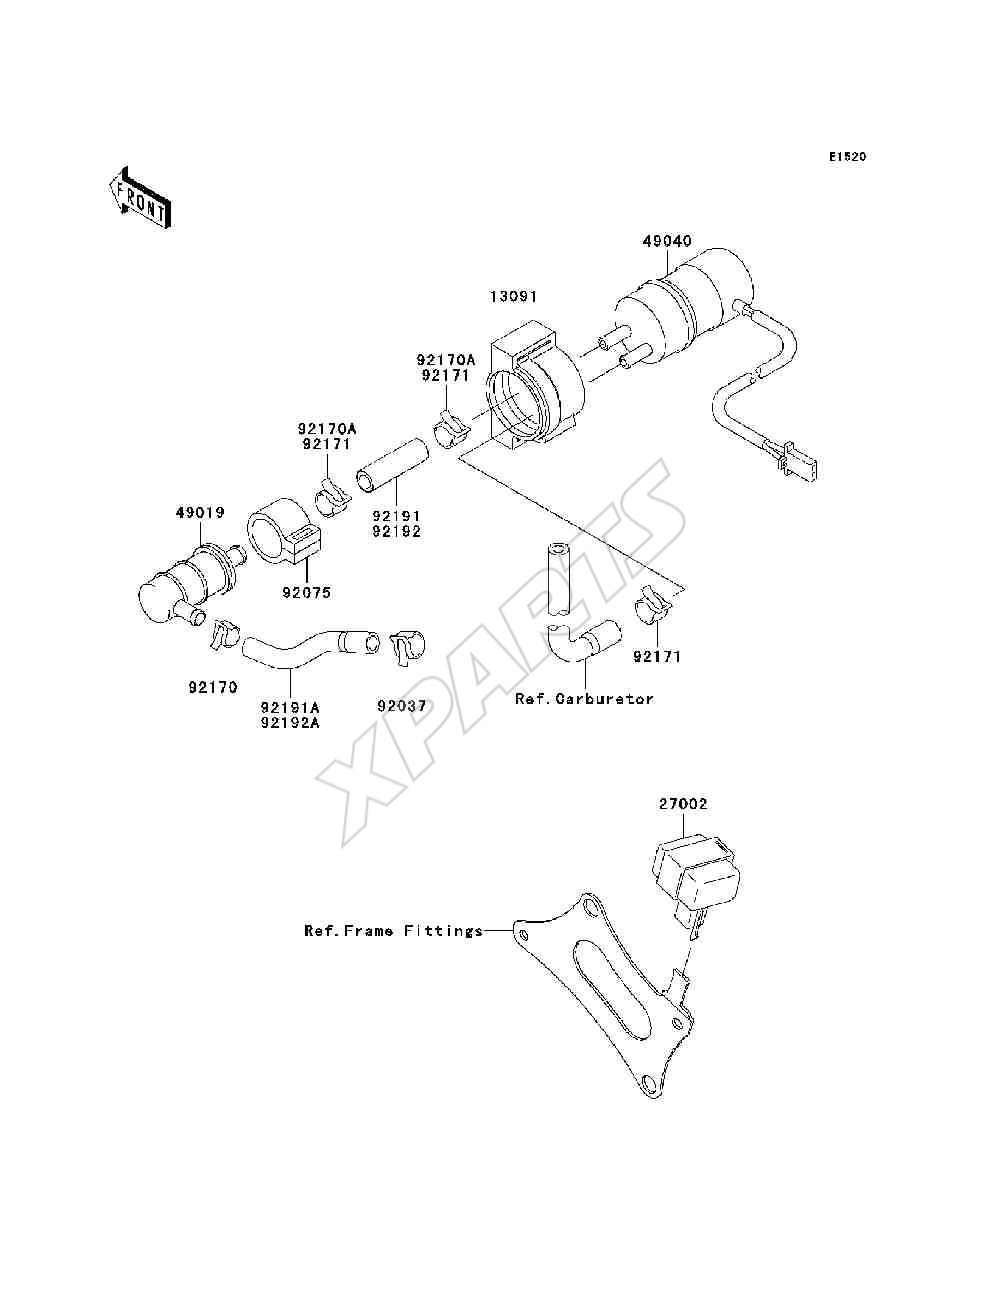 Kawasaki Zzr600 Zx600 J6f Fuel Pump 2006 Org Reservedele Fra Motorcycle Parts Kx65a6f Kx65 Engine Covers Diagram